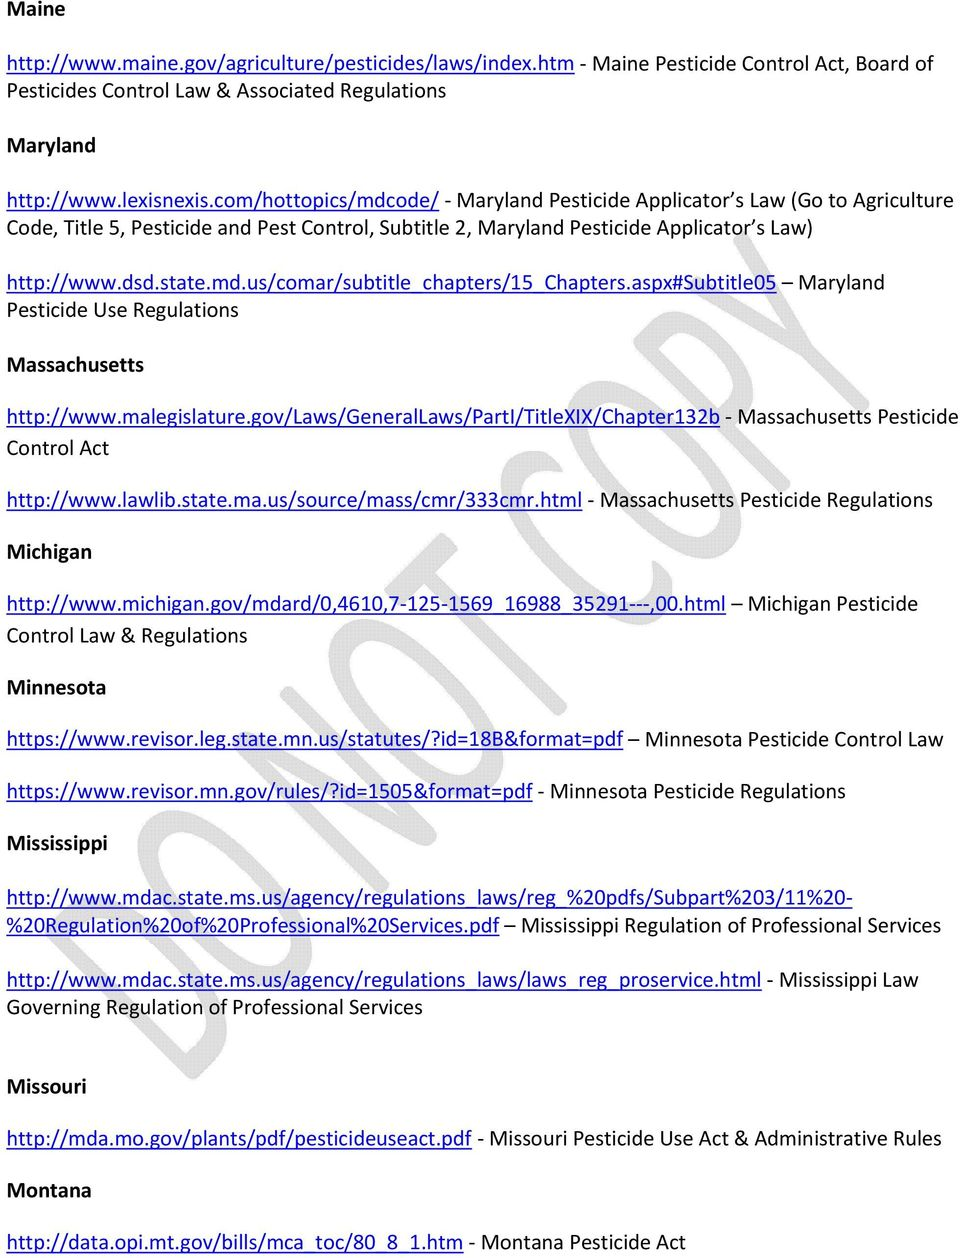 aspx#subtitle05 Maryland Pesticide Use Massachusetts http://www.malegislature.gov/laws/generallaws/parti/titlexix/chapter132b Massachusetts Pesticide Control Act http://www.lawlib.state.ma.us/source/mass/cmr/333cmr.